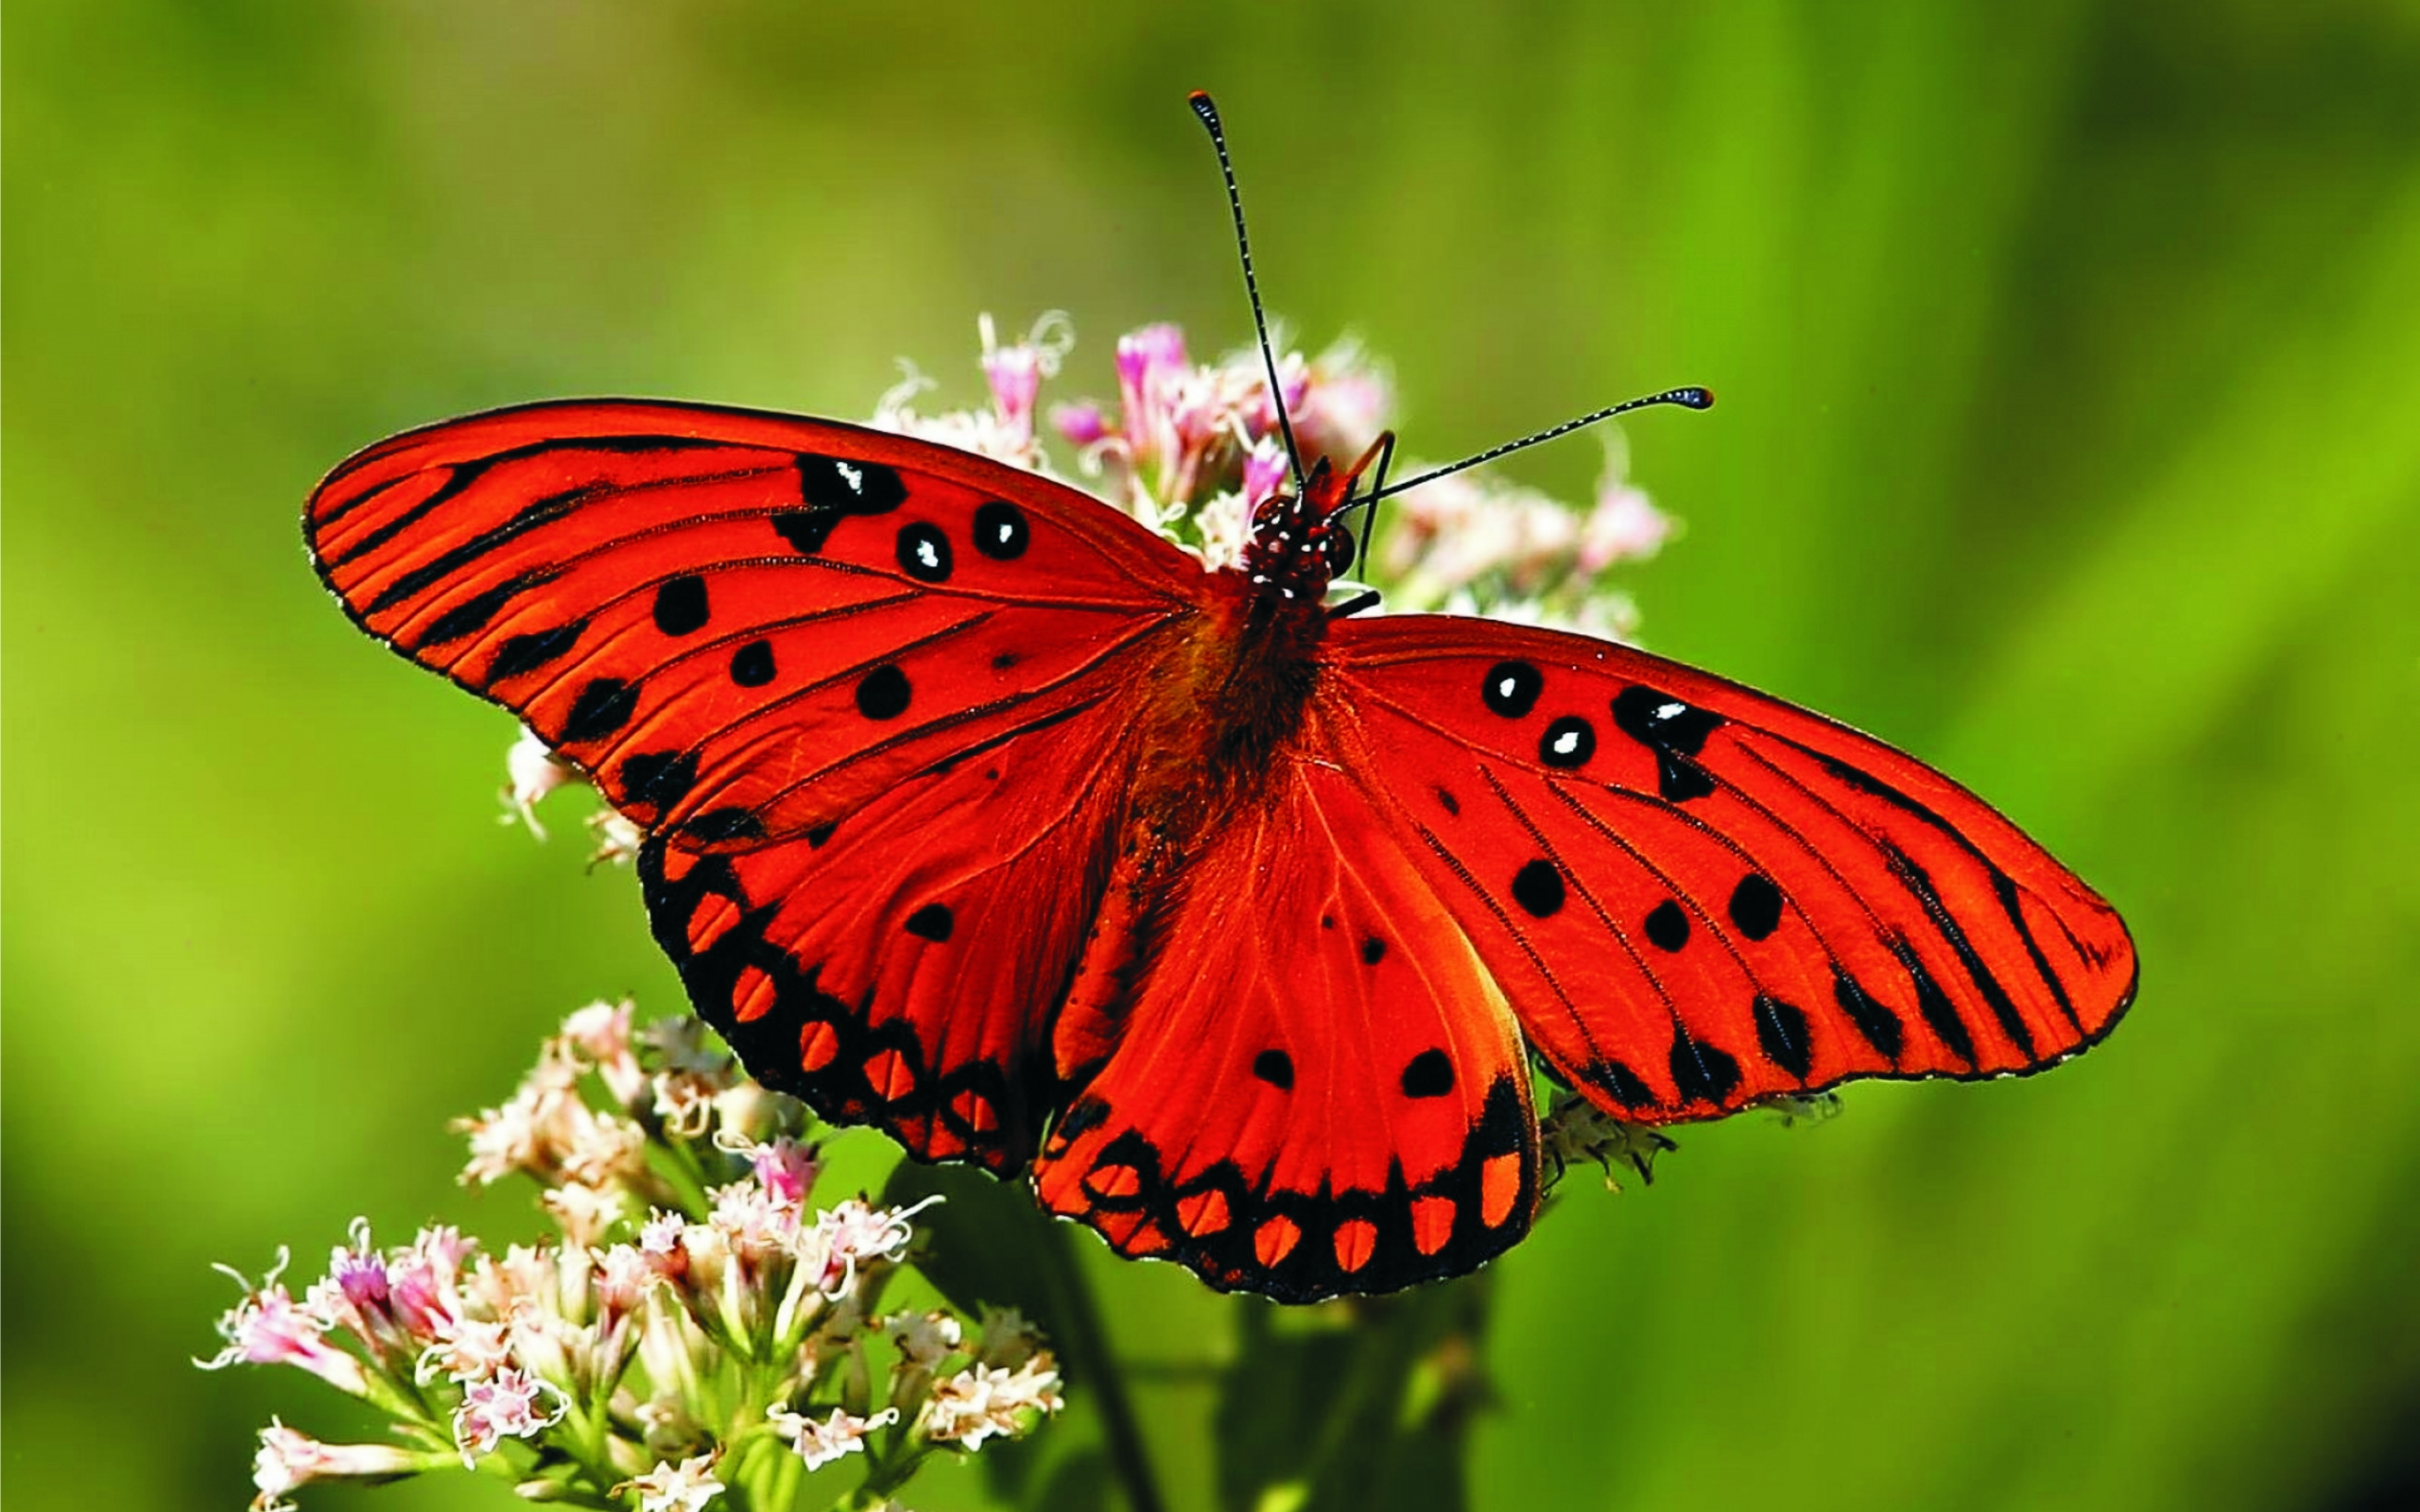 55 Colorful ButterflyHD Images Wallpapers Download 2560x1600